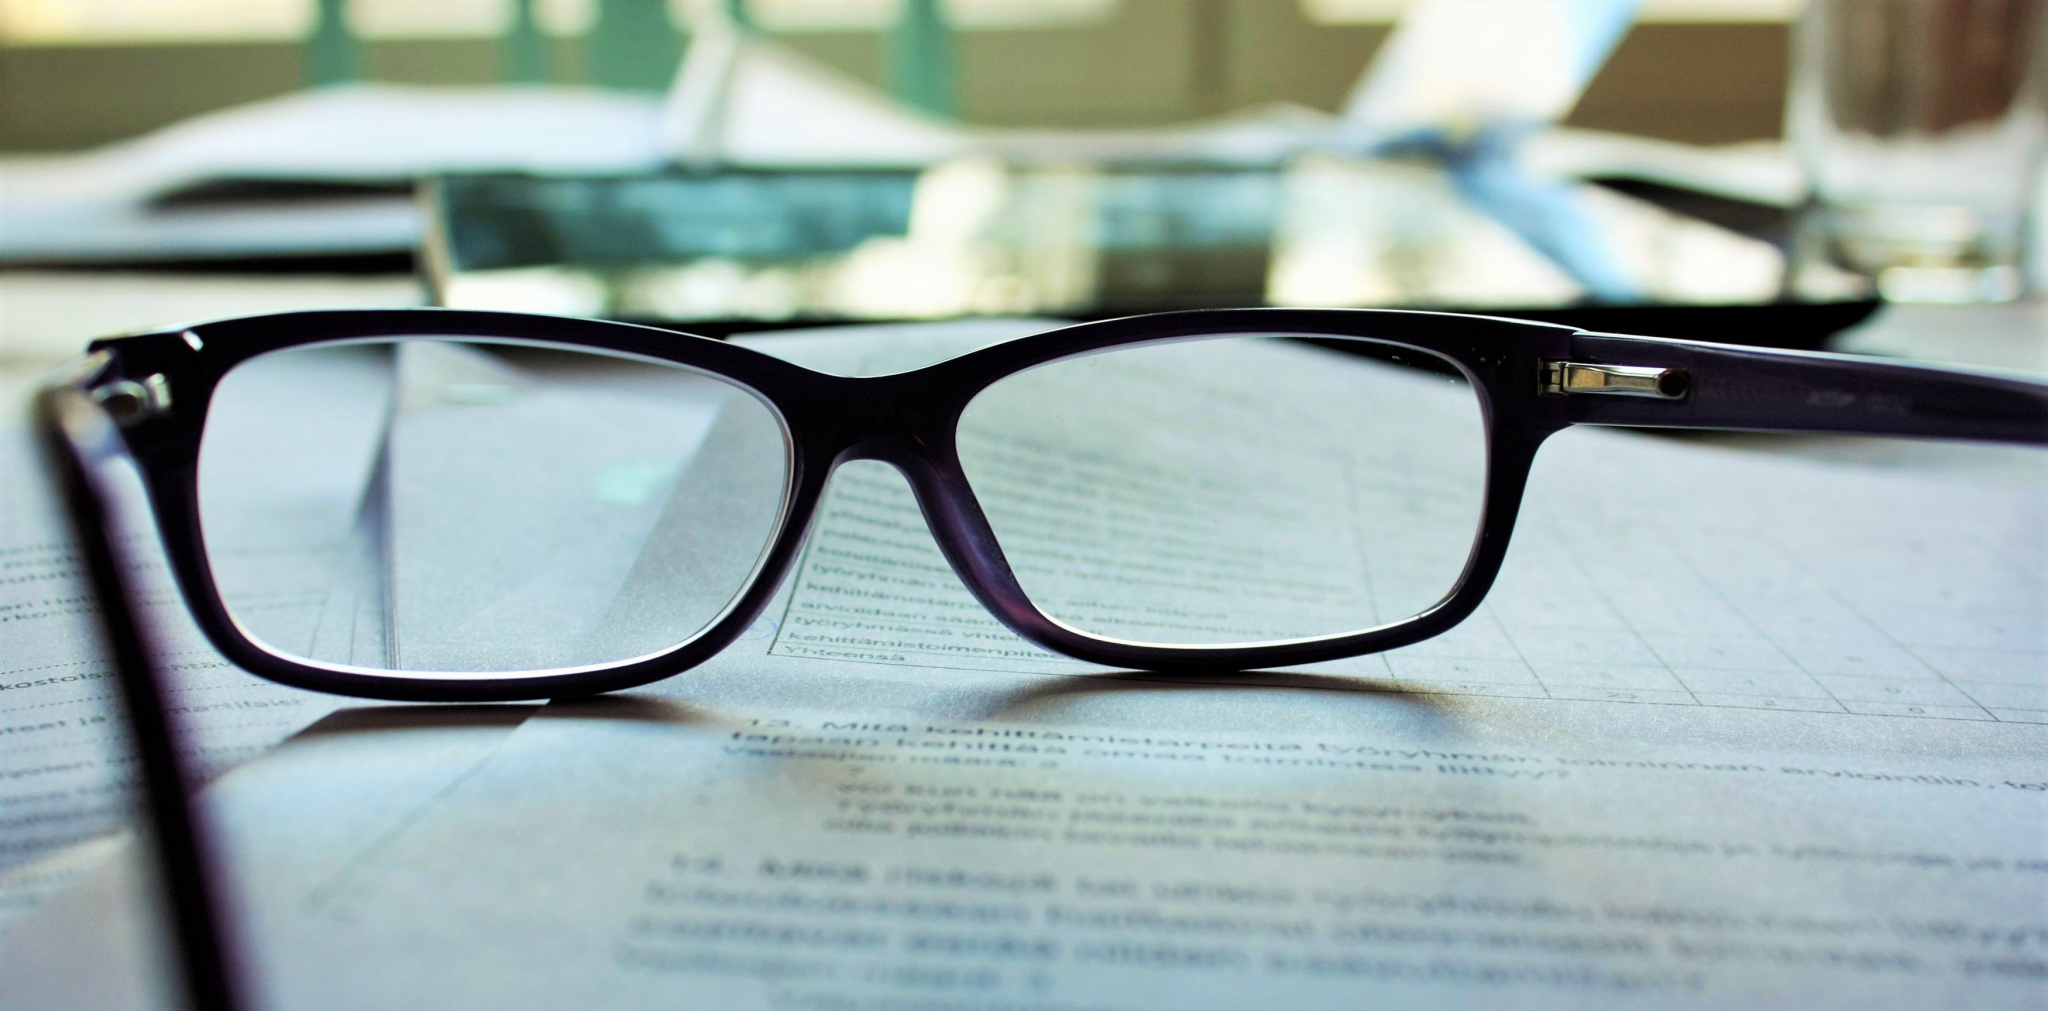 IT pros often suffer from eyestrain from excessive looking at digital screens